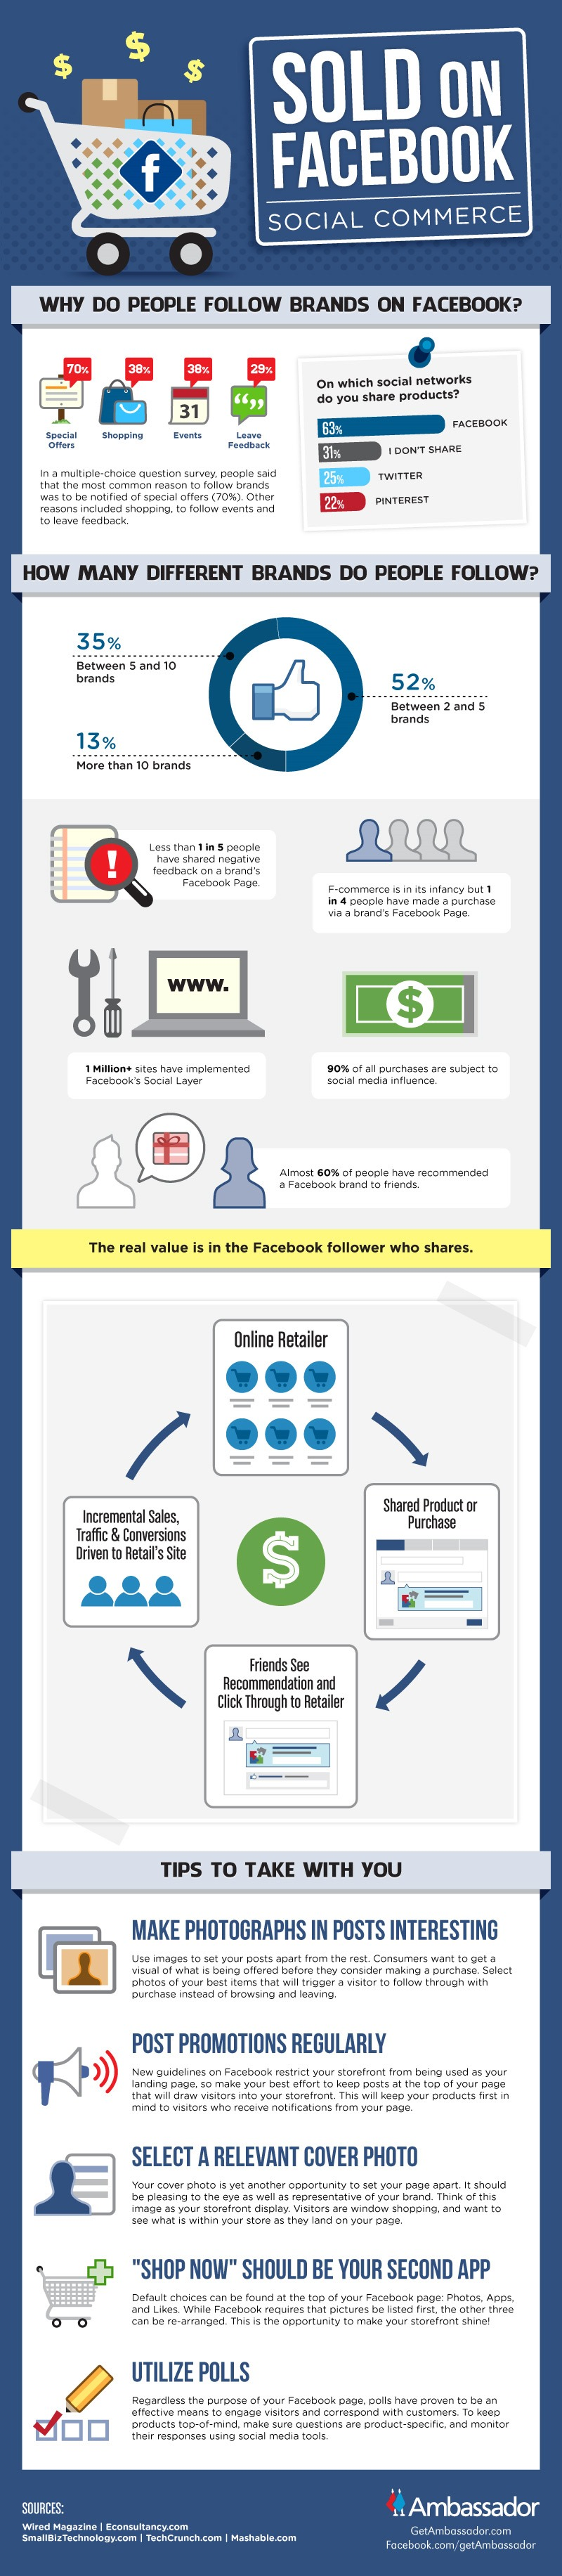 Social-Commerce-Facebook-Infographic